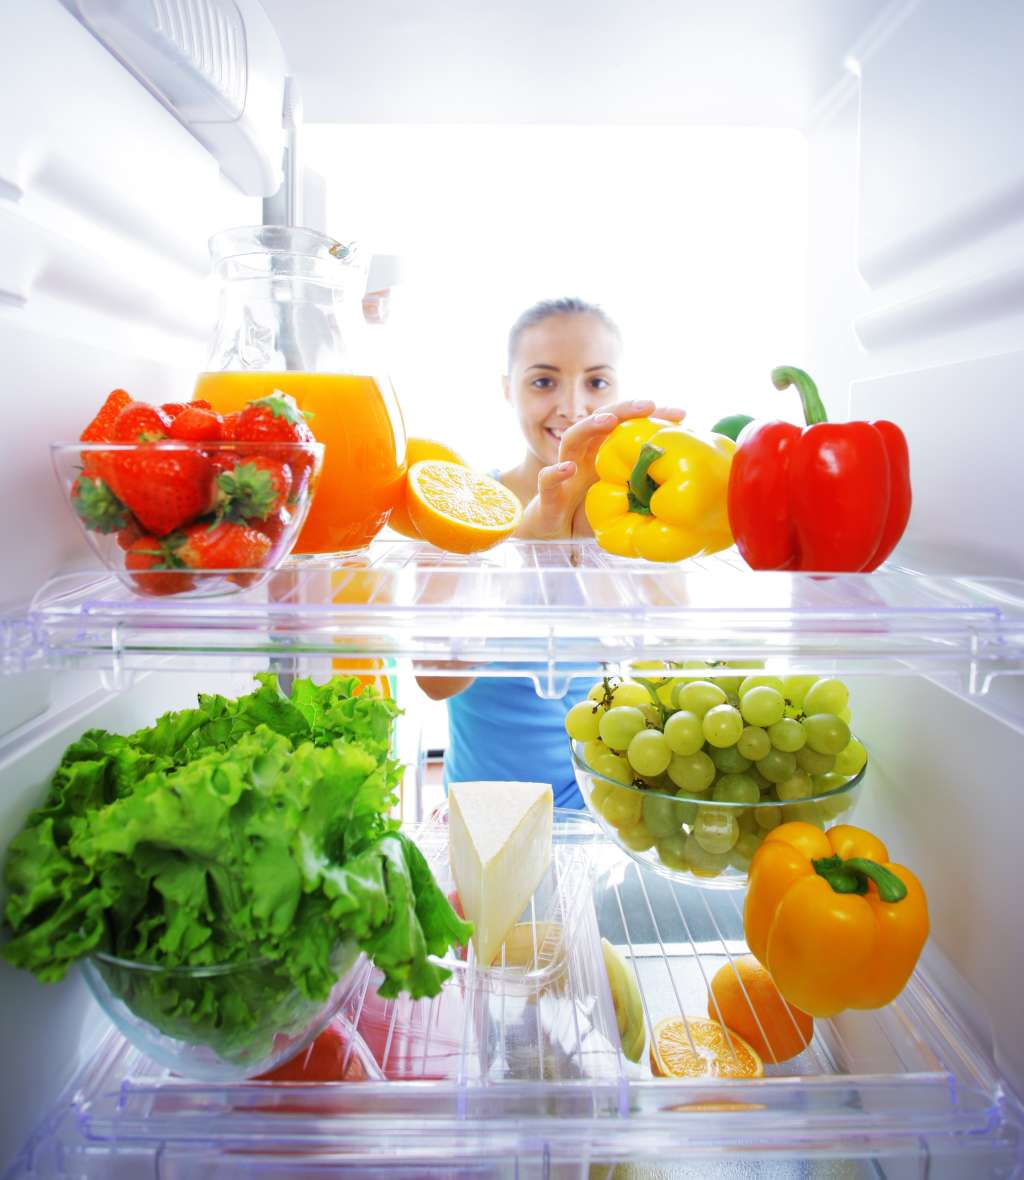 Teach Yourself to Eat More Vegetables By Reorganizing Your Fridge